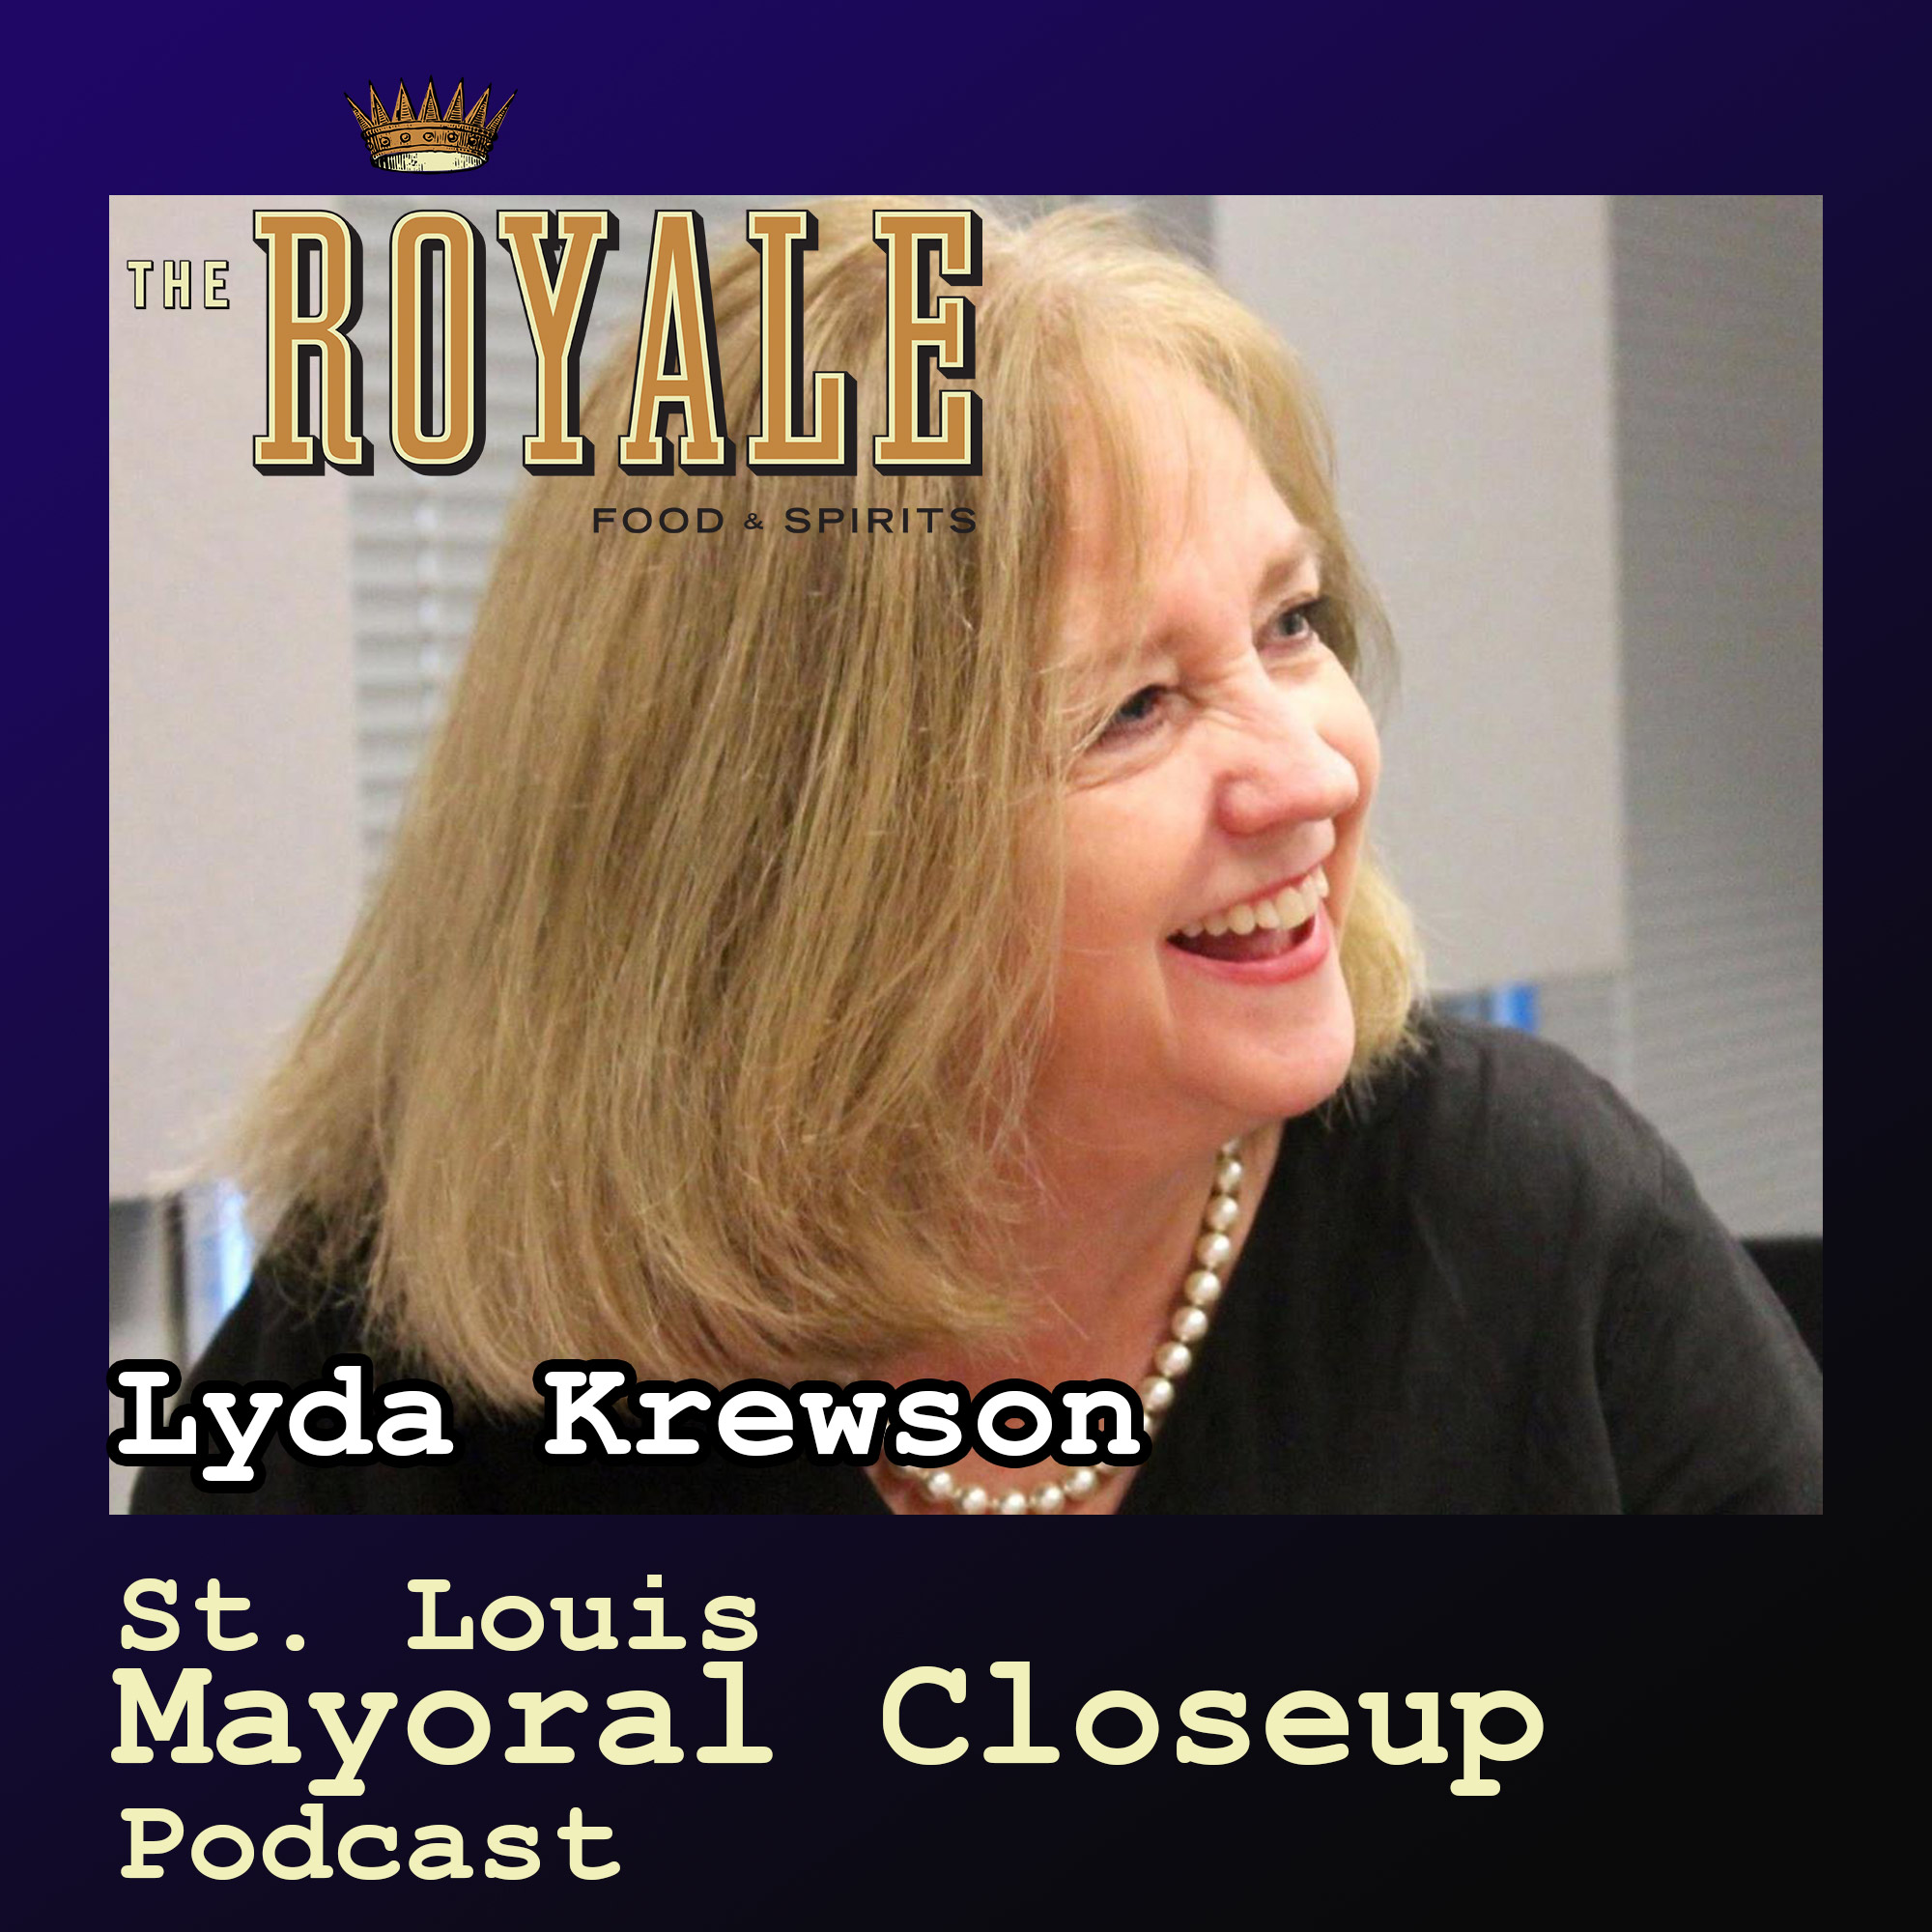 St. Louis Mayoral Closeup Podcast, Episode Two: Lyda Krewson